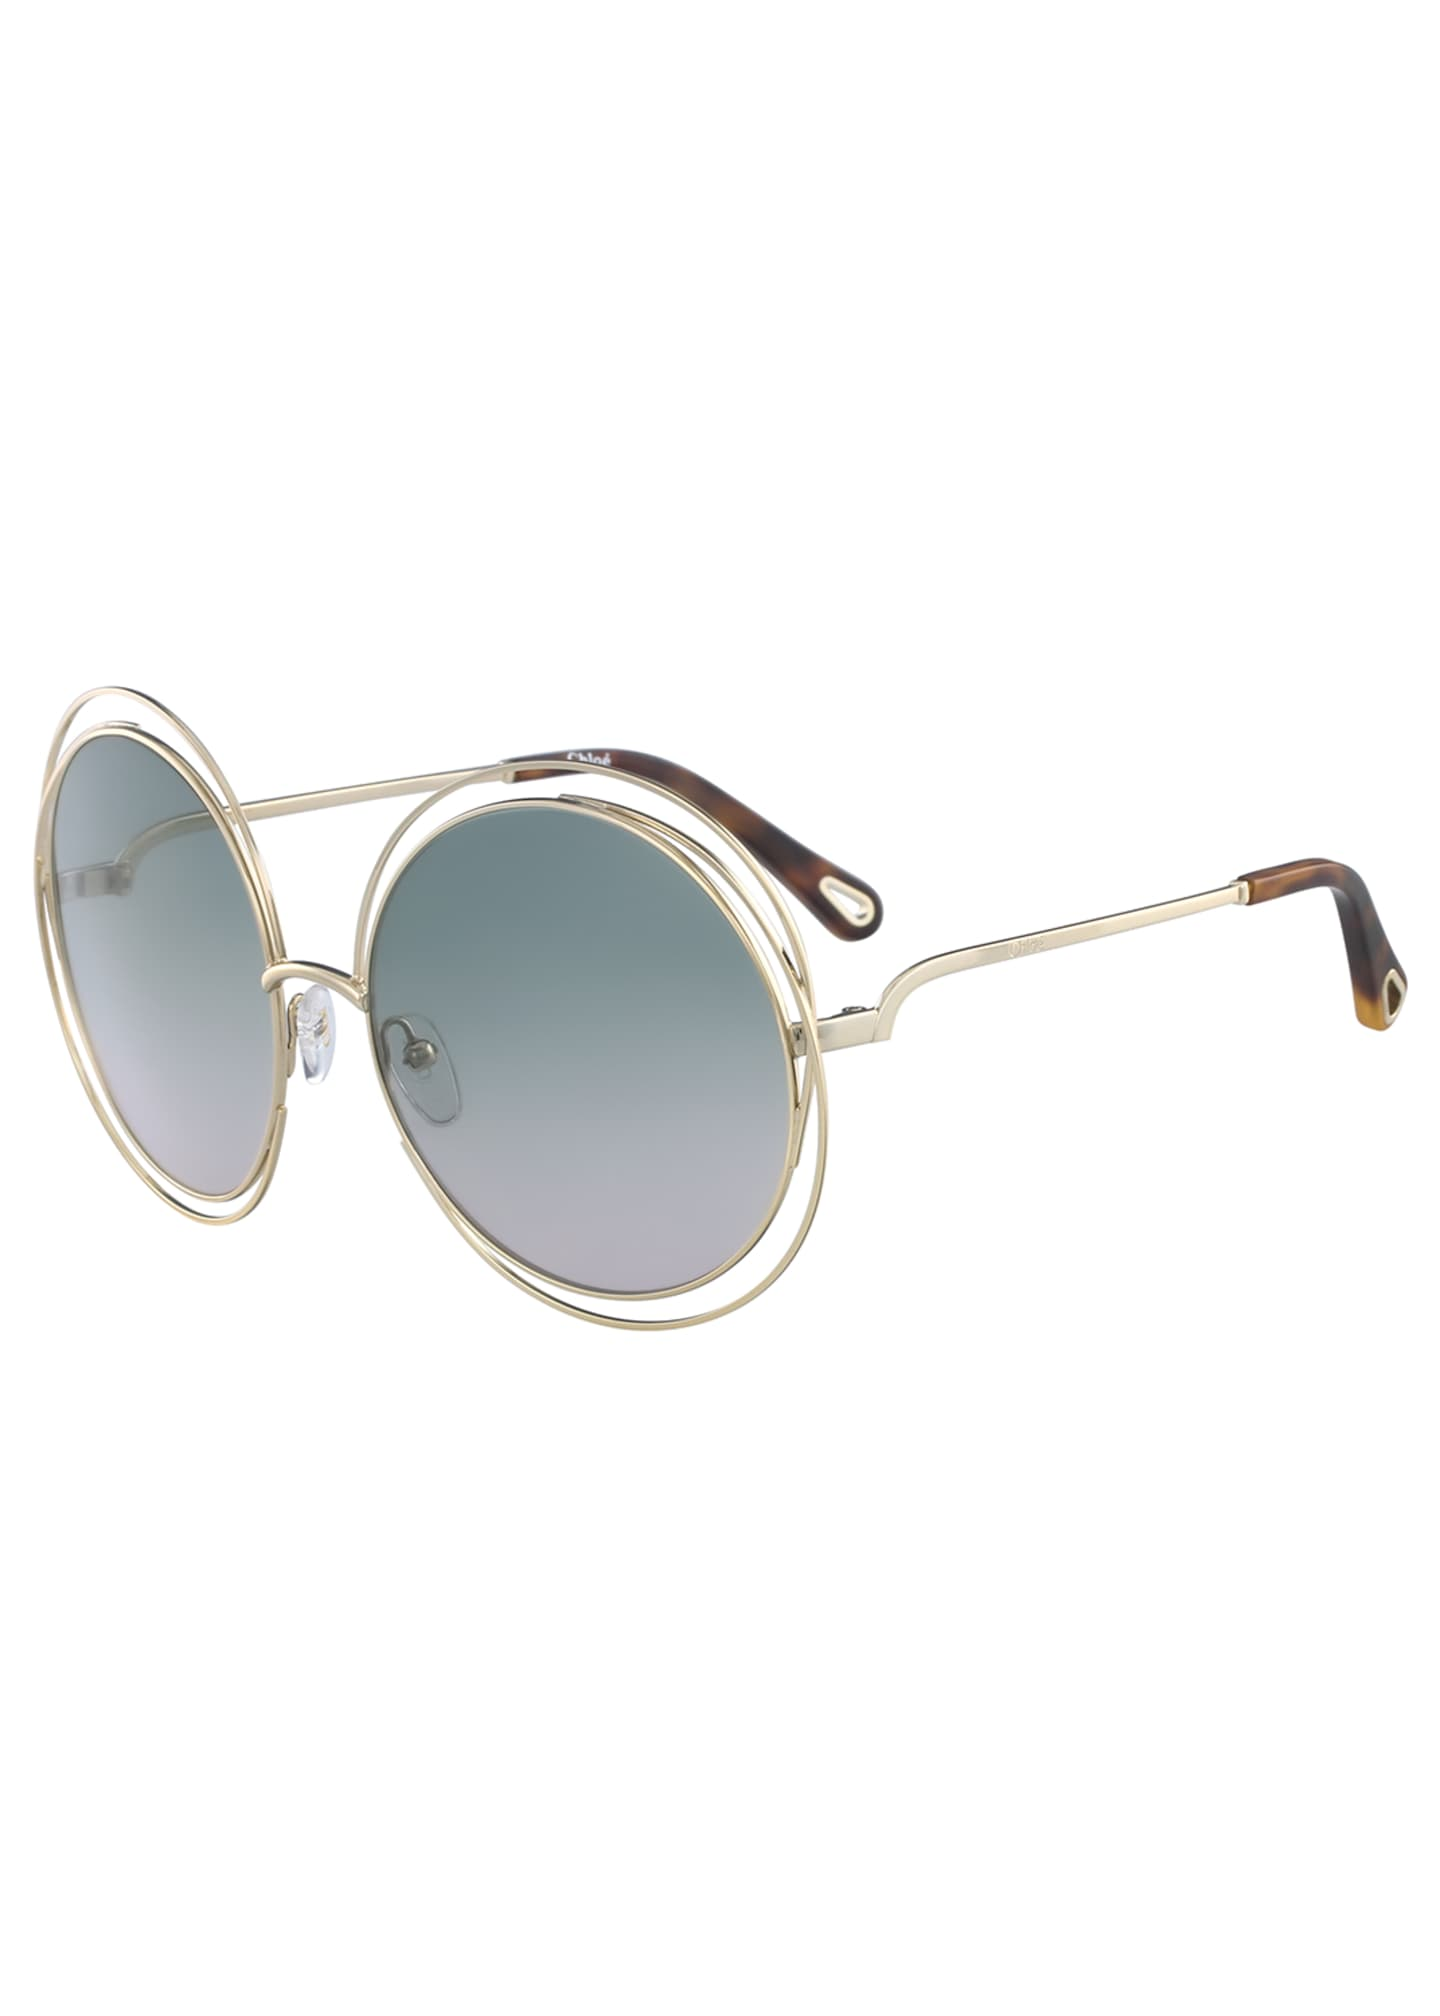 Chloe Carlina Round Wire Metal Sunglasses, Golden/Peach